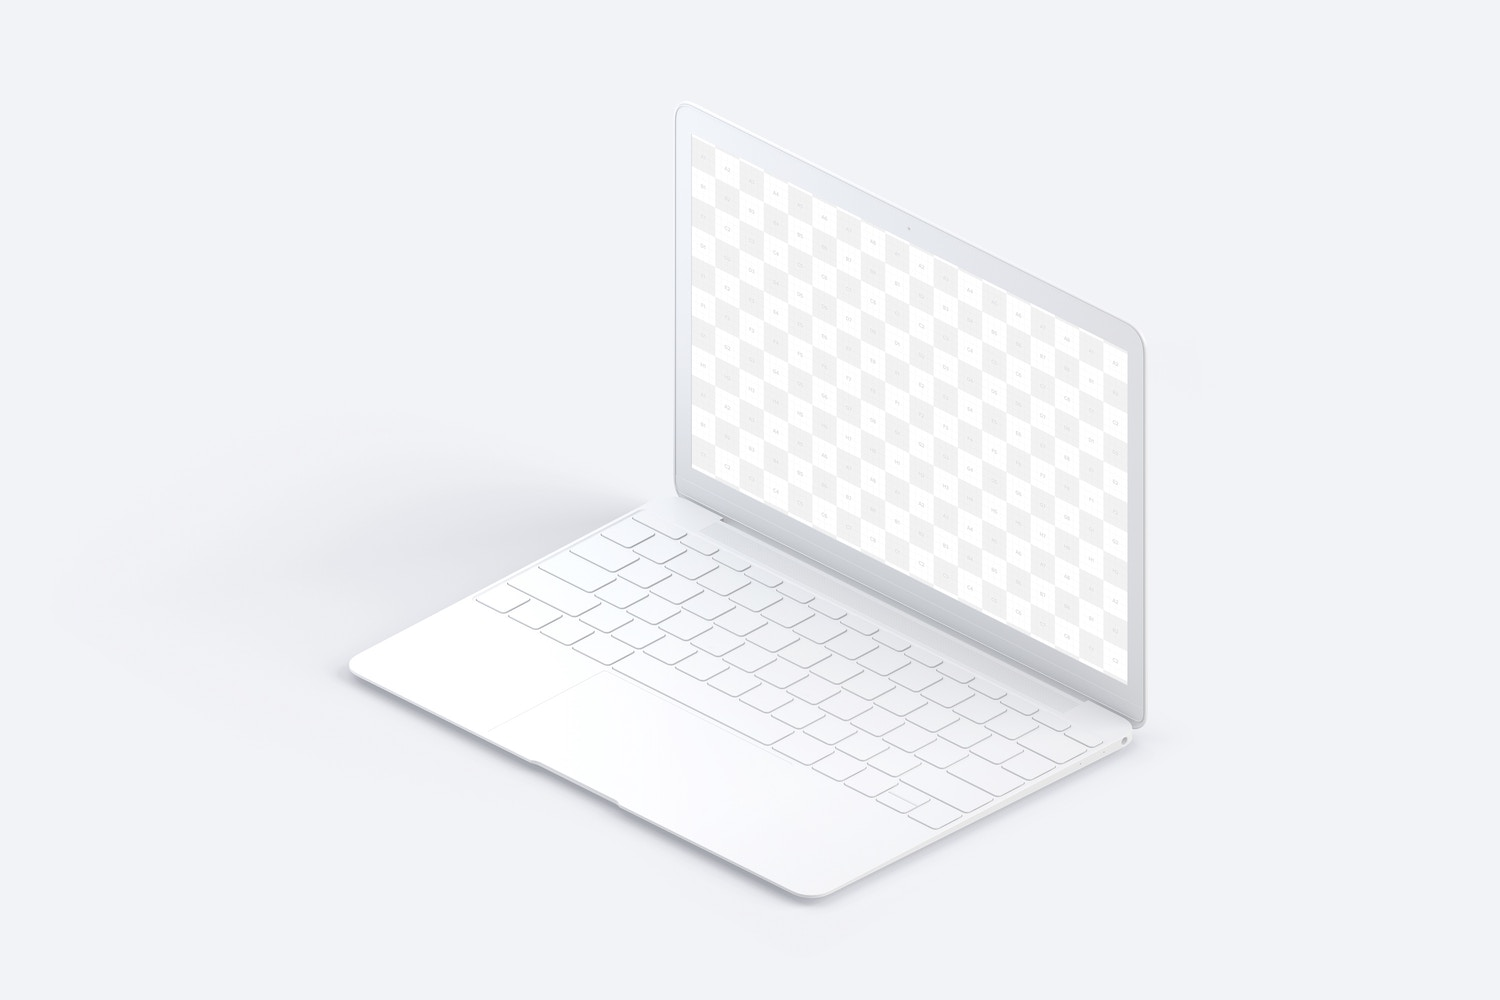 Clay MacBook Mockup, Isometric Right View (2) by Original Mockups on Original Mockups